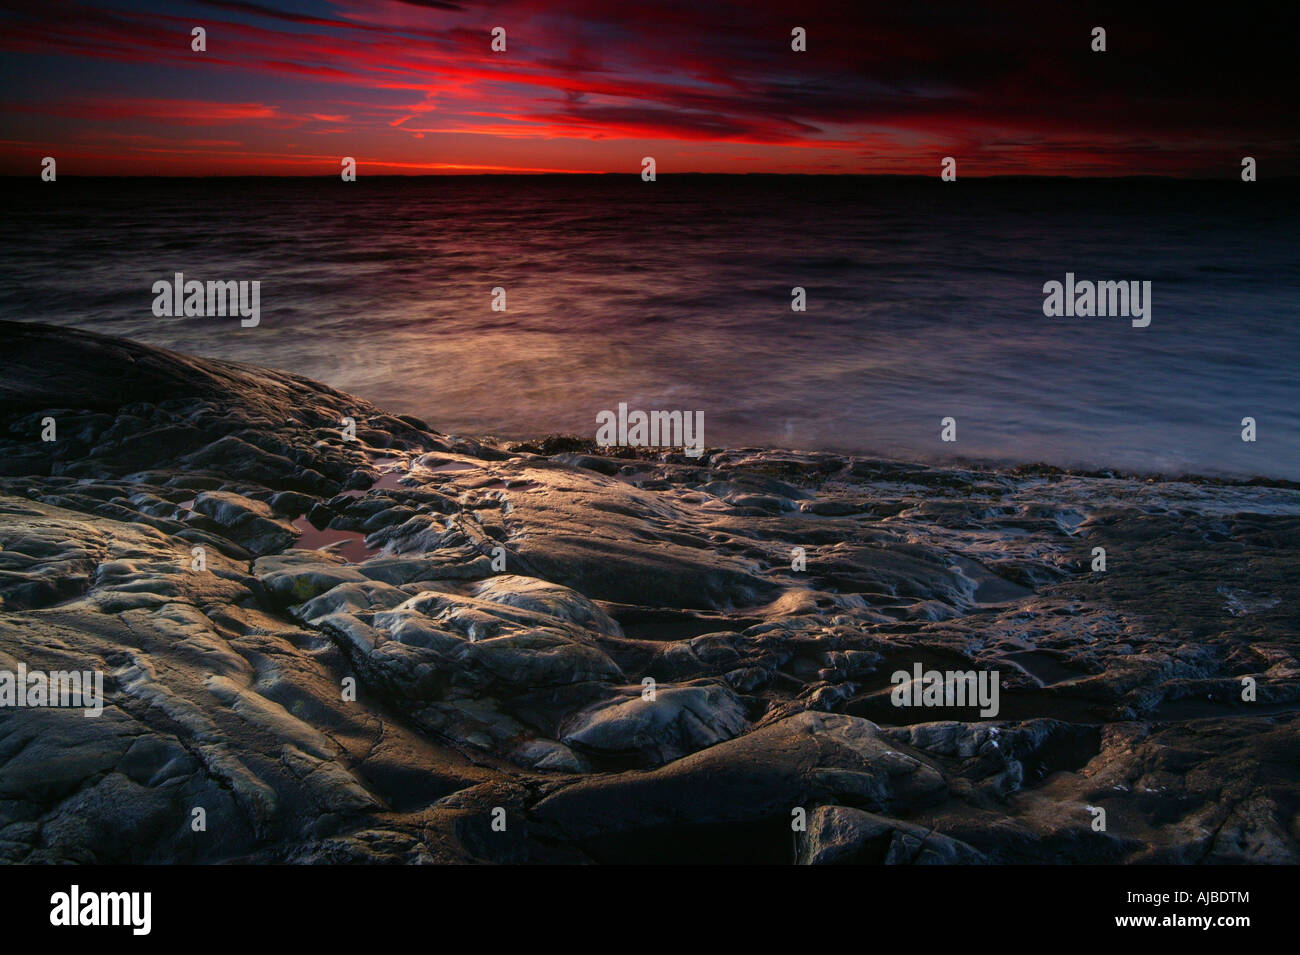 Post-sunset afterglow by the Oslofjord at Larkollen in Rygge kommune, Østfold fylke, Norway. - Stock Image